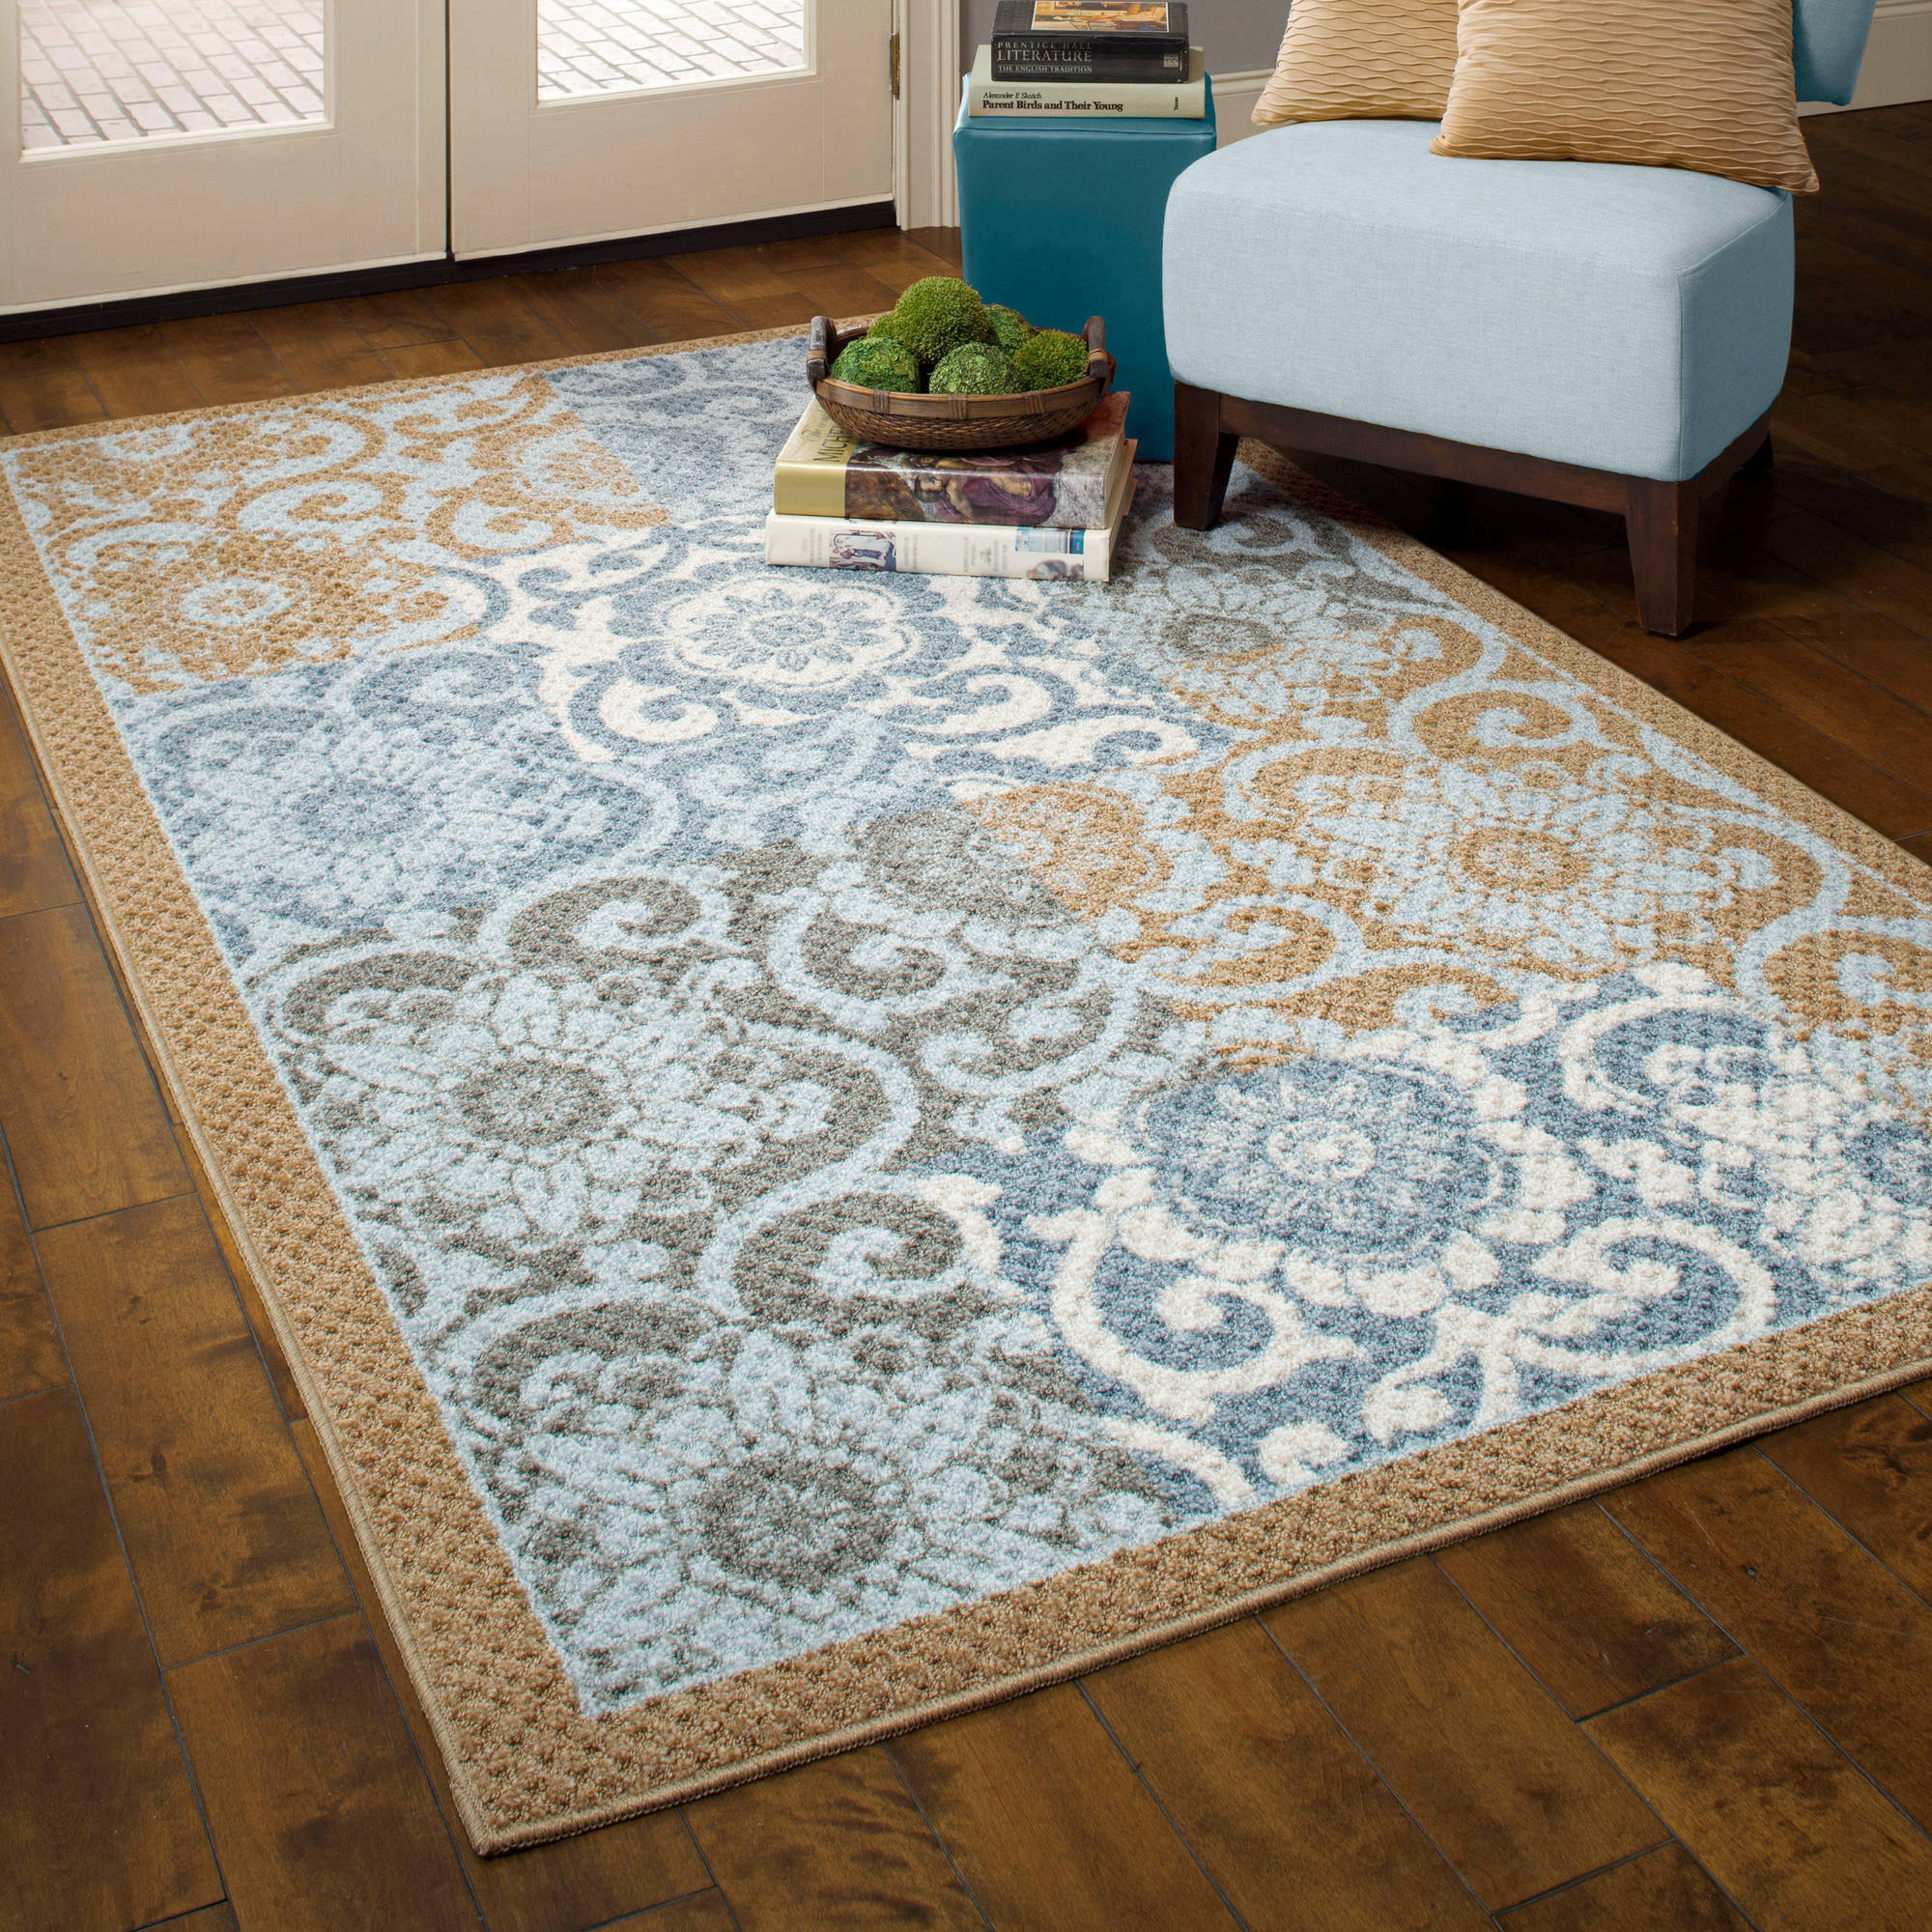 Better Homes and Gardens Pretty Peony Blue/Brown Textured Print Rug Program